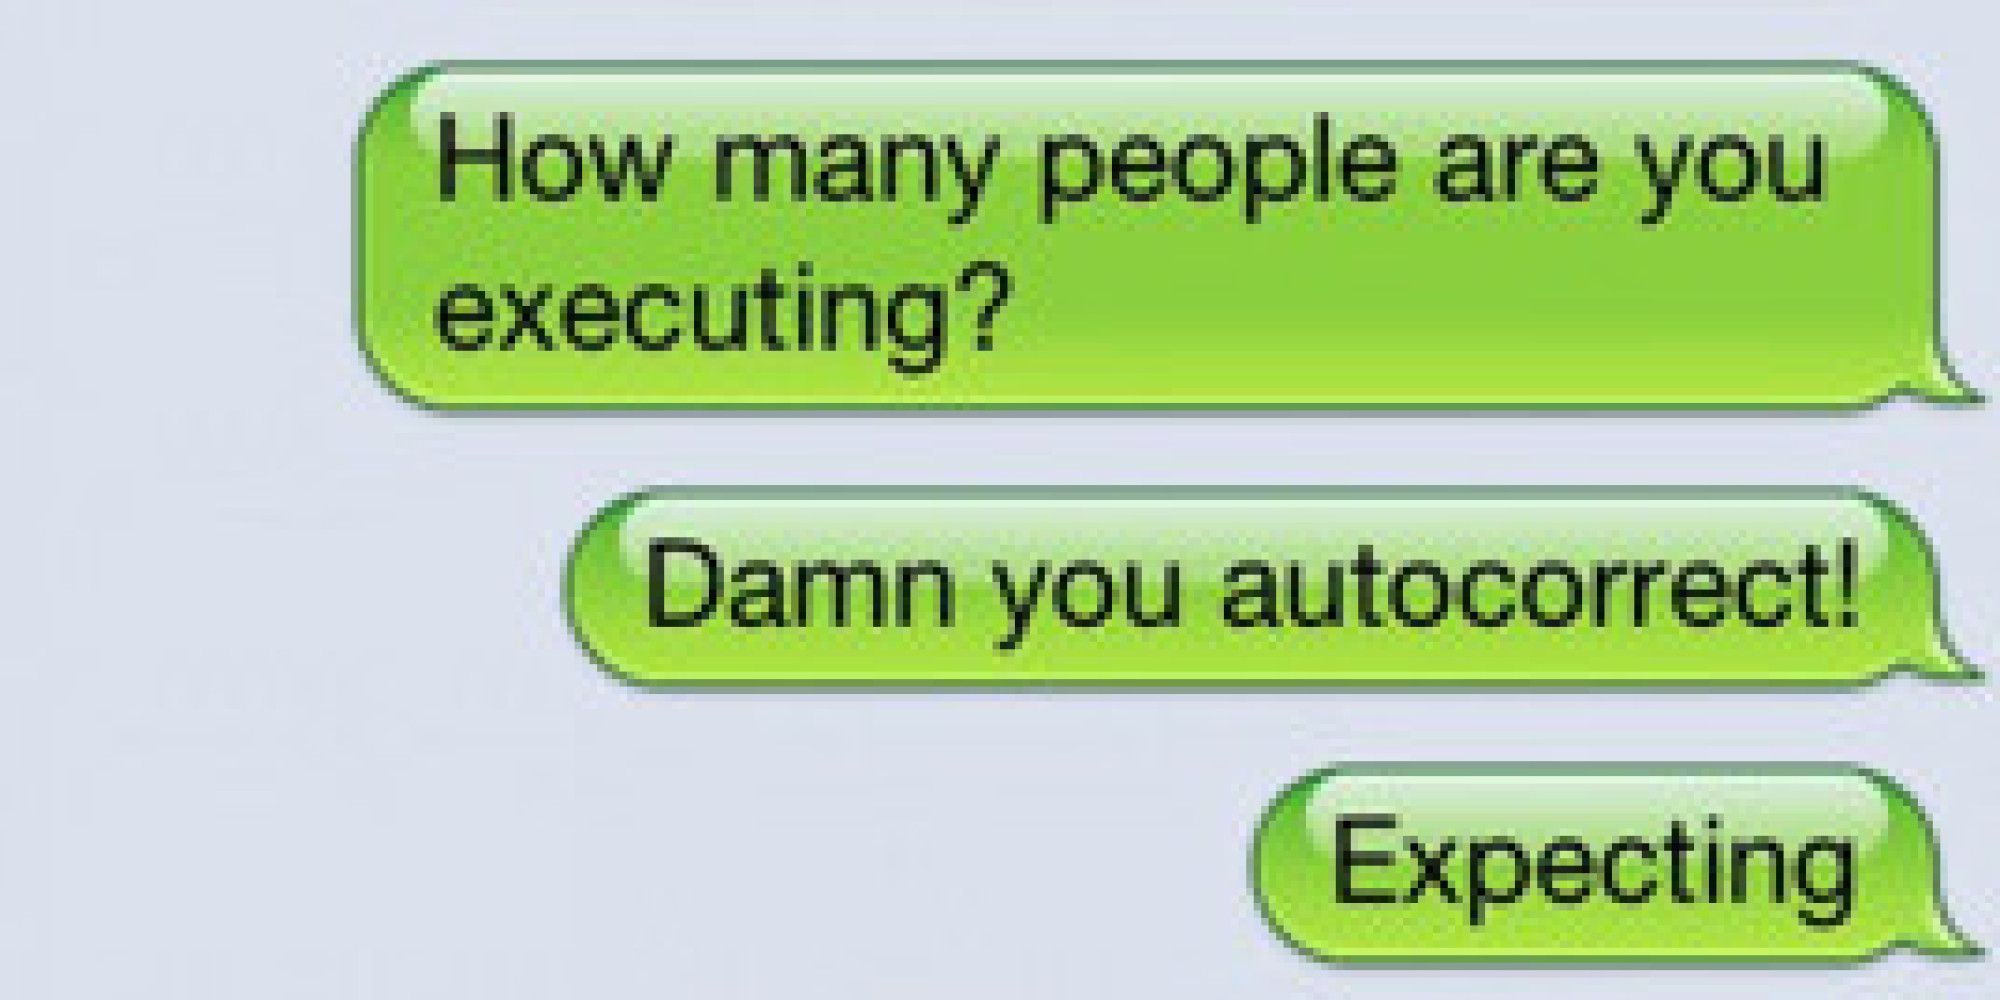 how to turn off auto correct word 2013